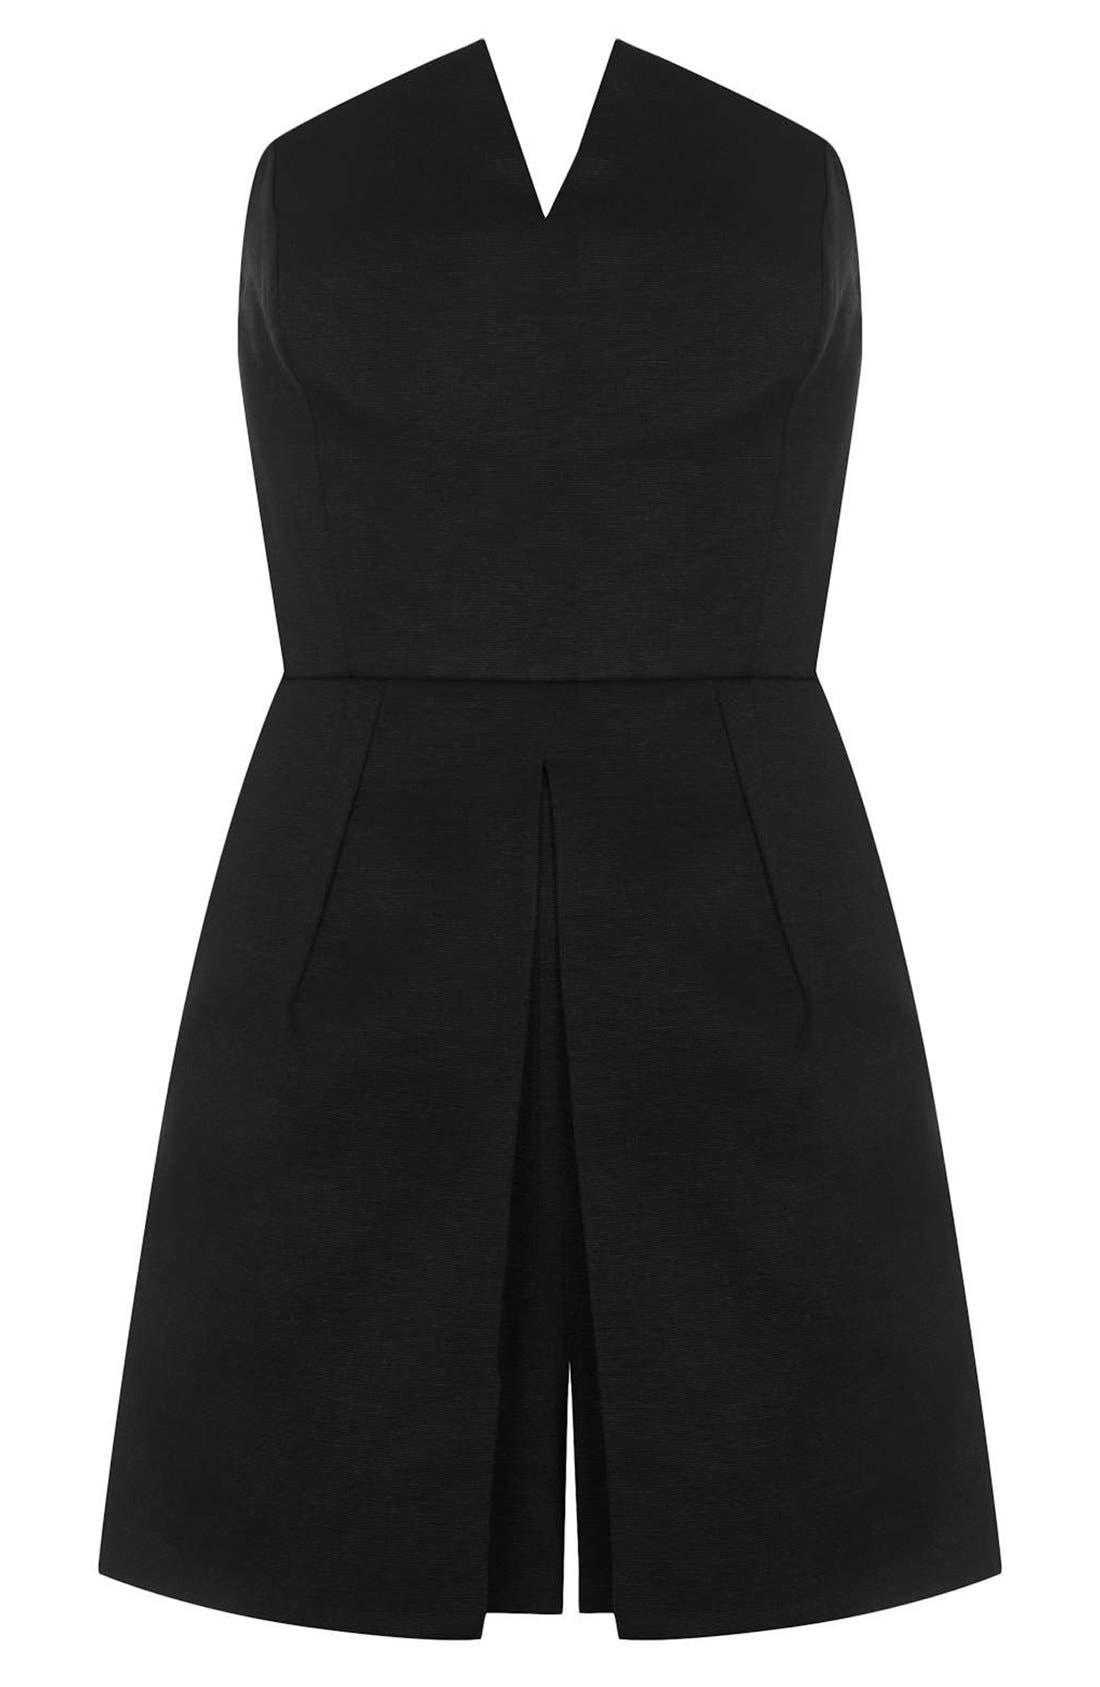 Alternate Image 3  - Topshop Notched Neck Romper (Regular & Petite)